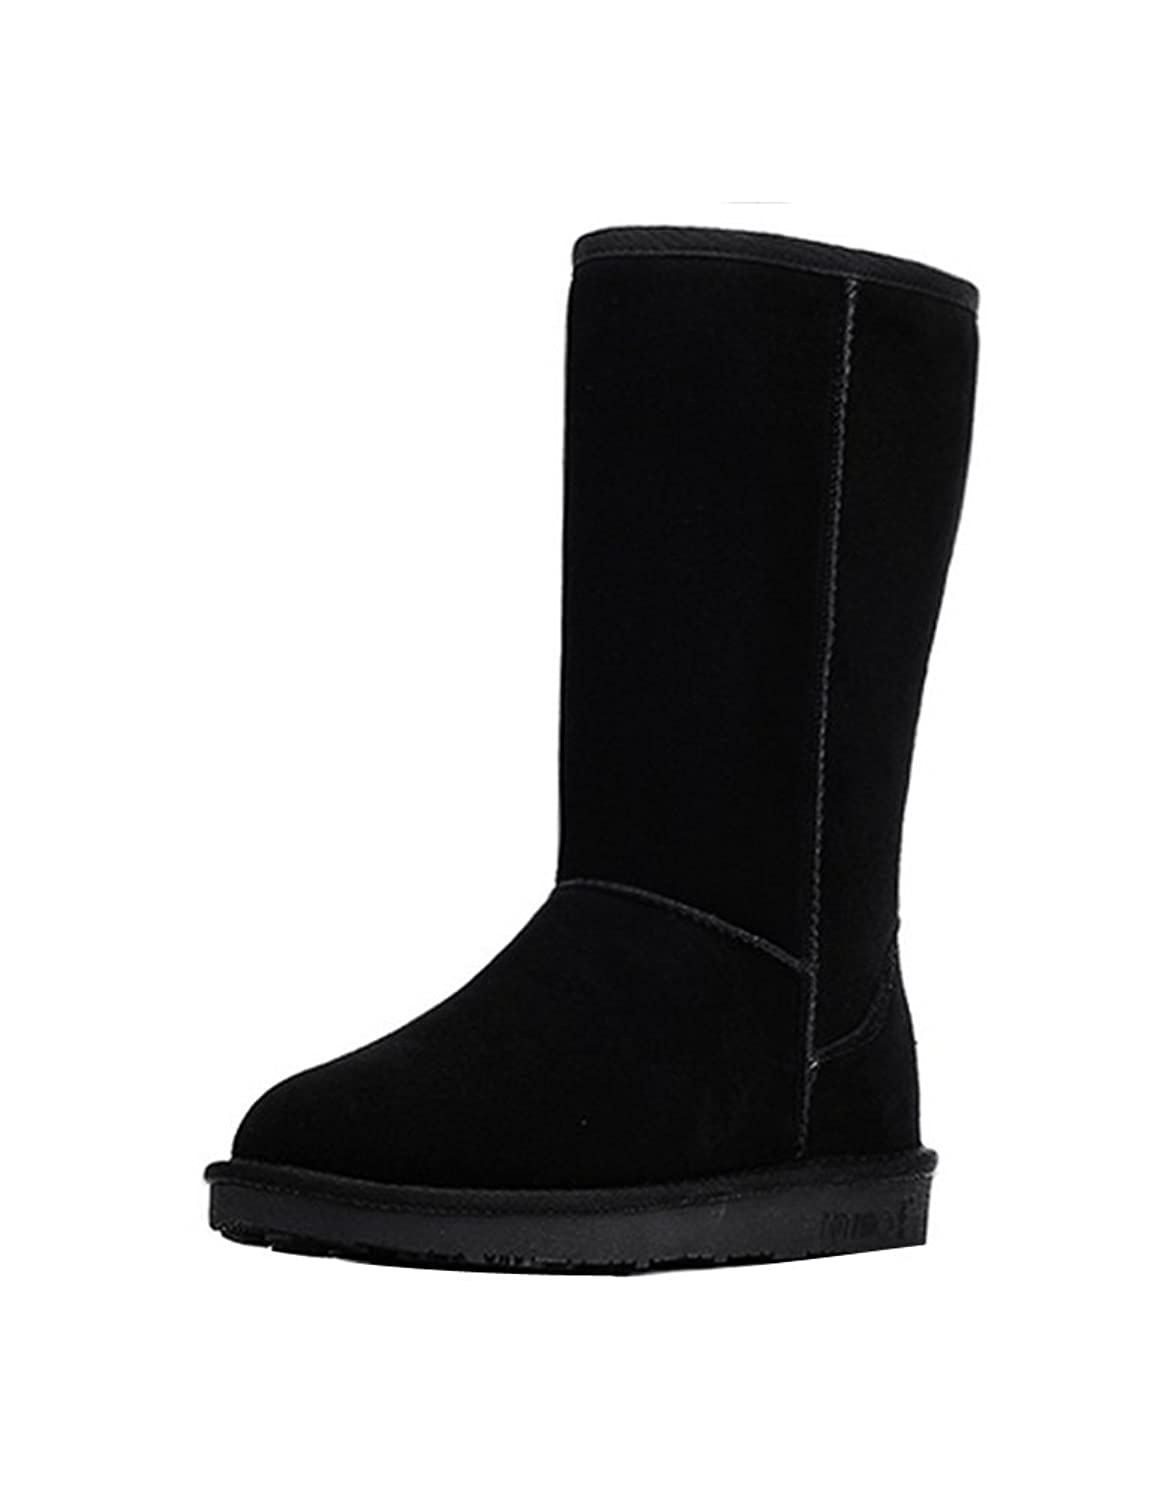 Ashlen Womens Classic Cold Weather Tall Snow Boot Faux Leather Fluffy Lined Boot